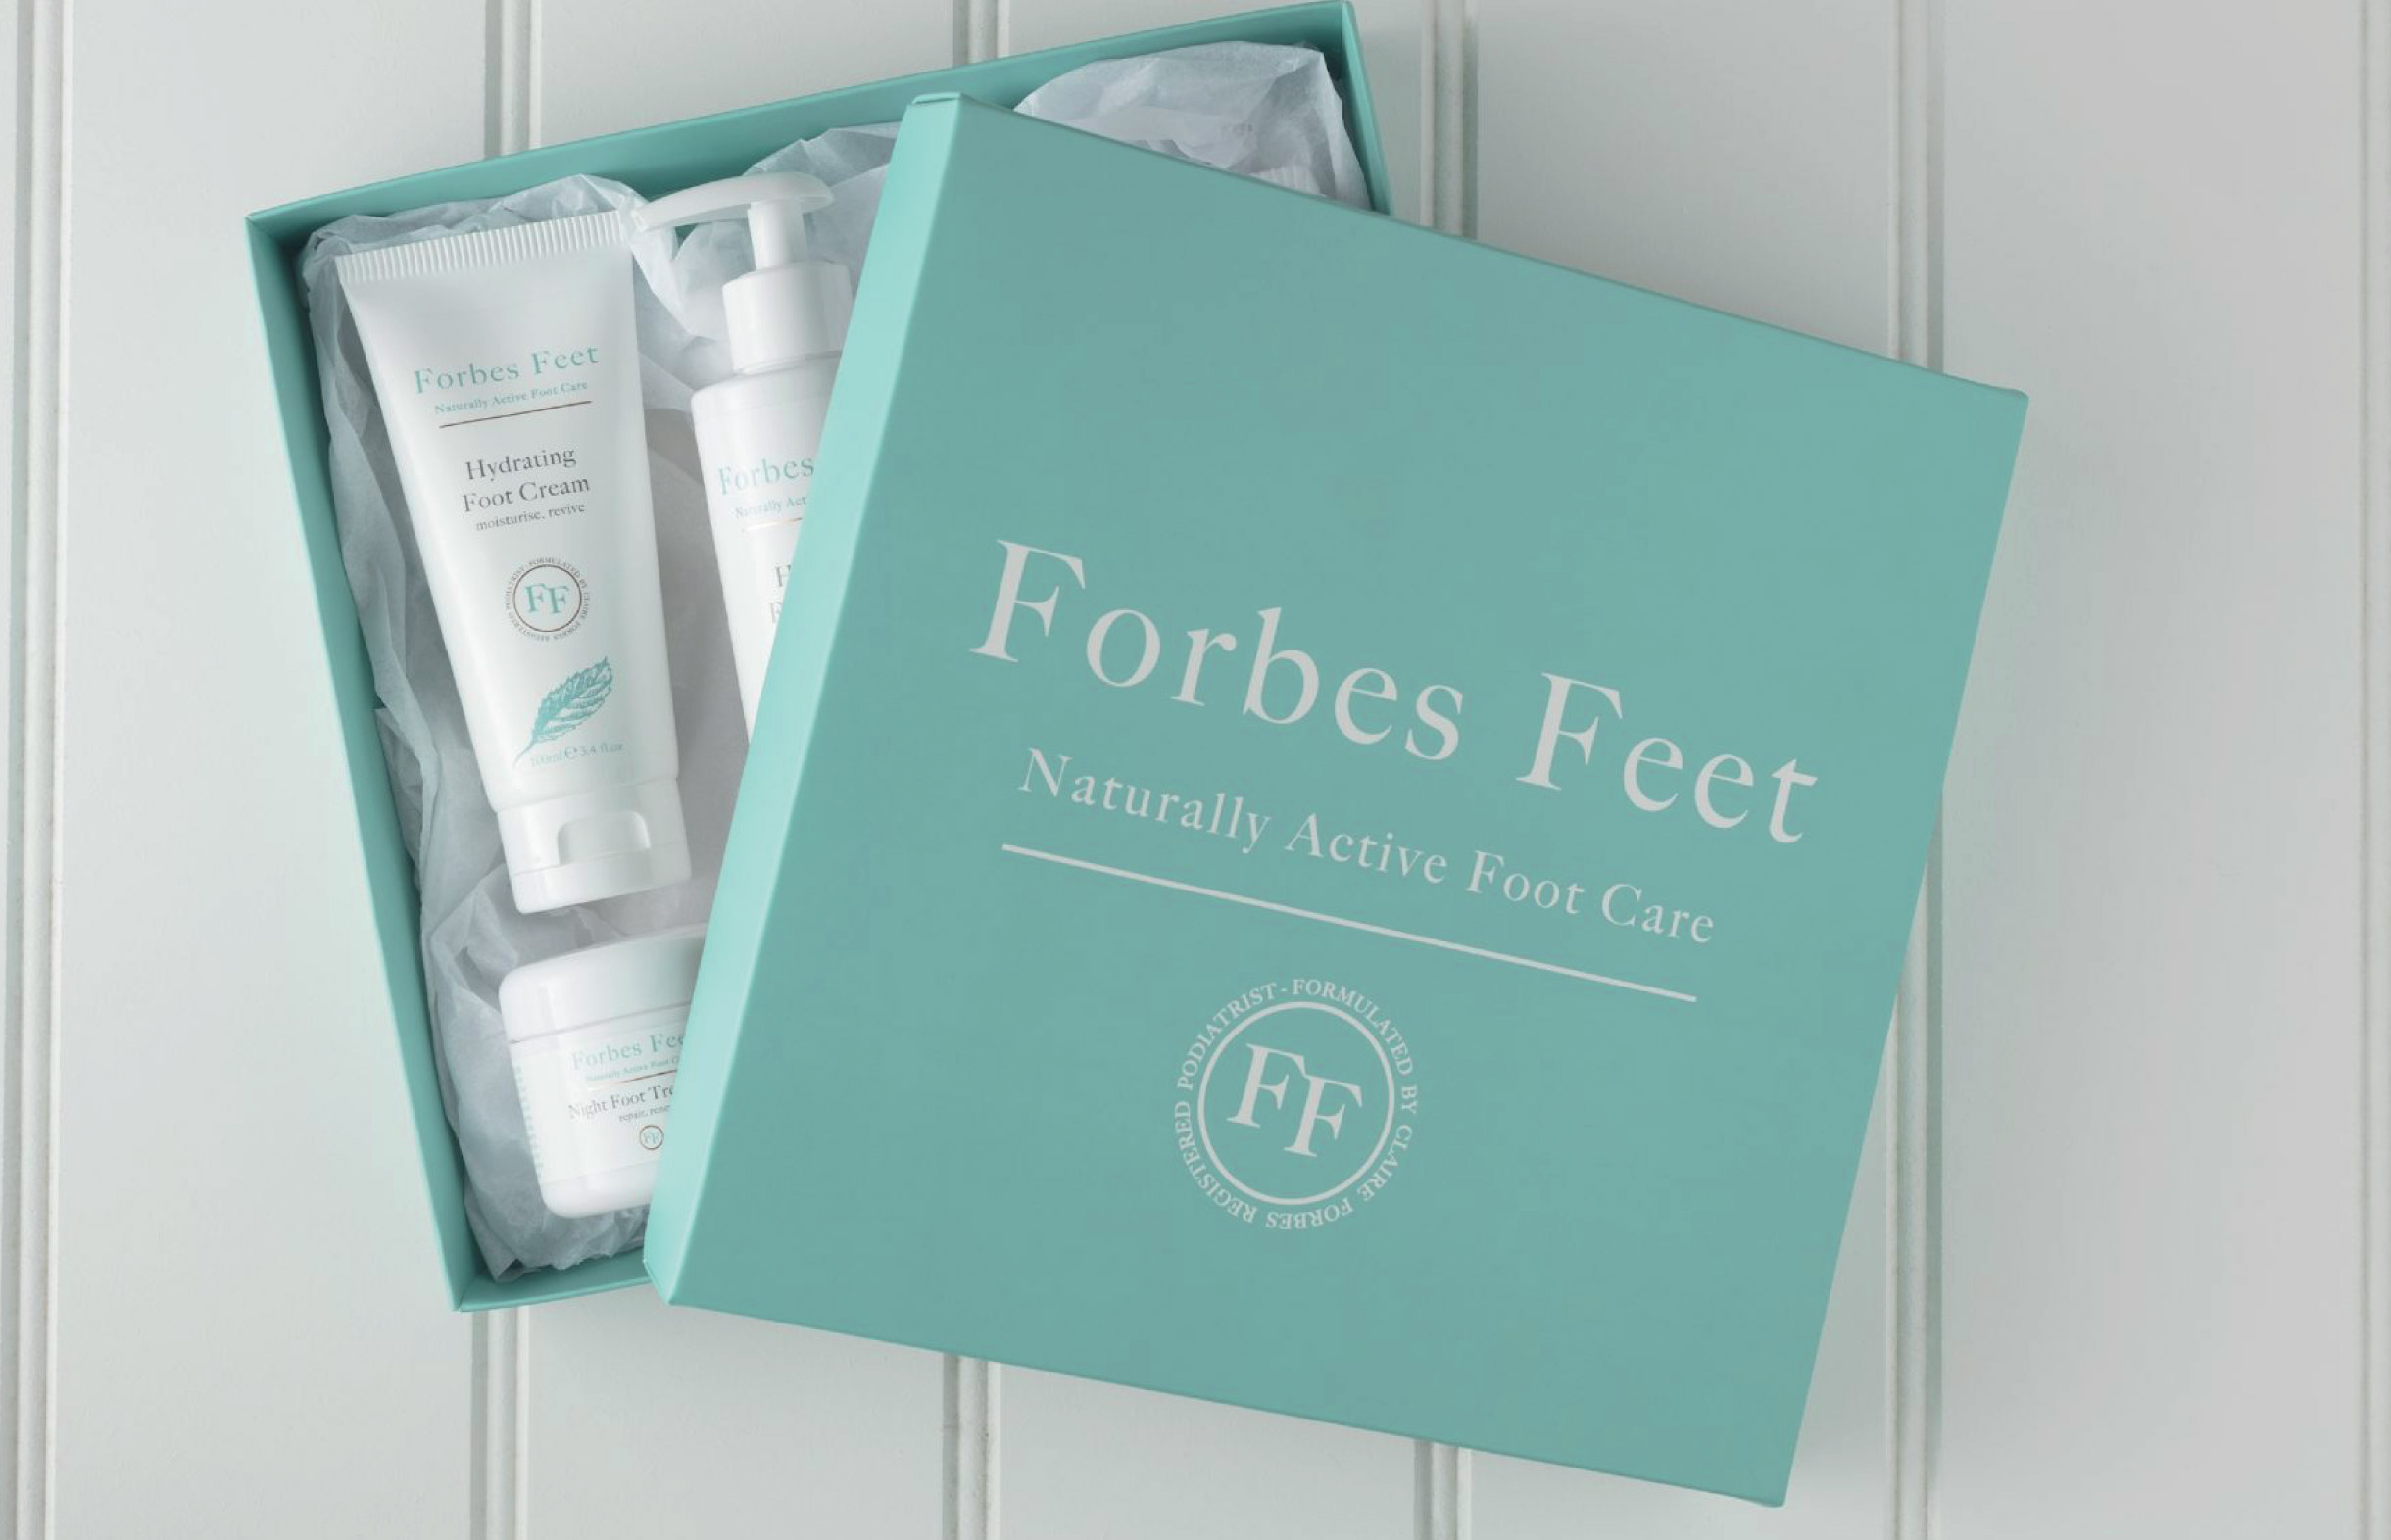 Quints Design co - Forbes Feet Product & Packaging Design